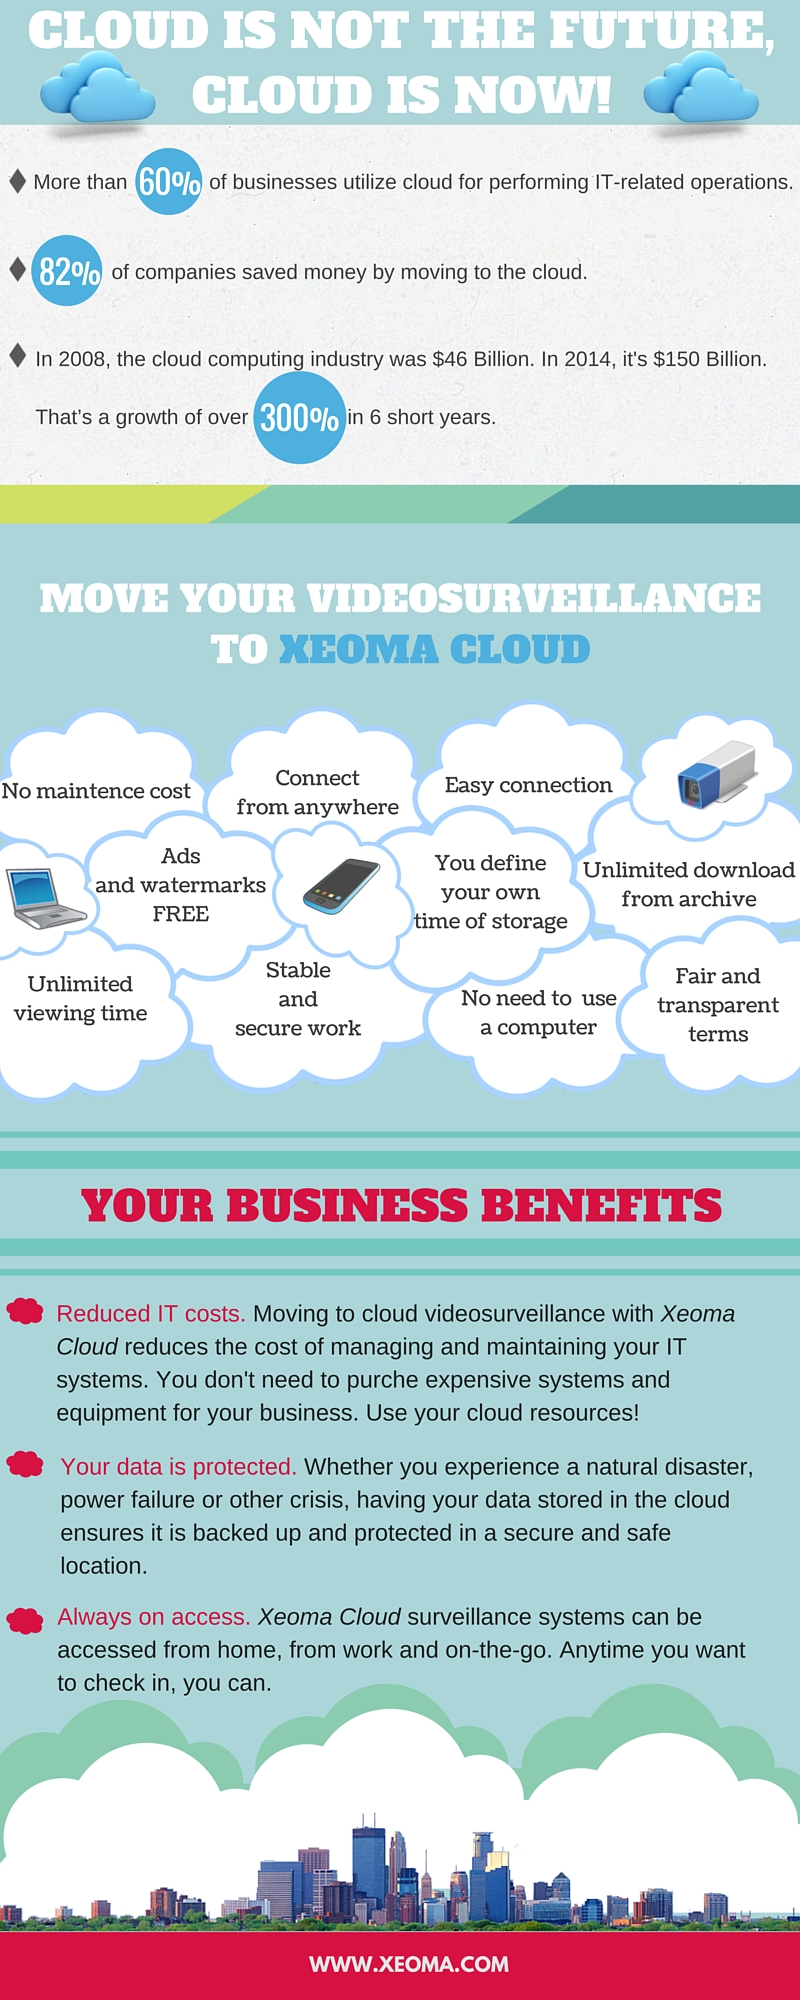 How does the cloud work for your business